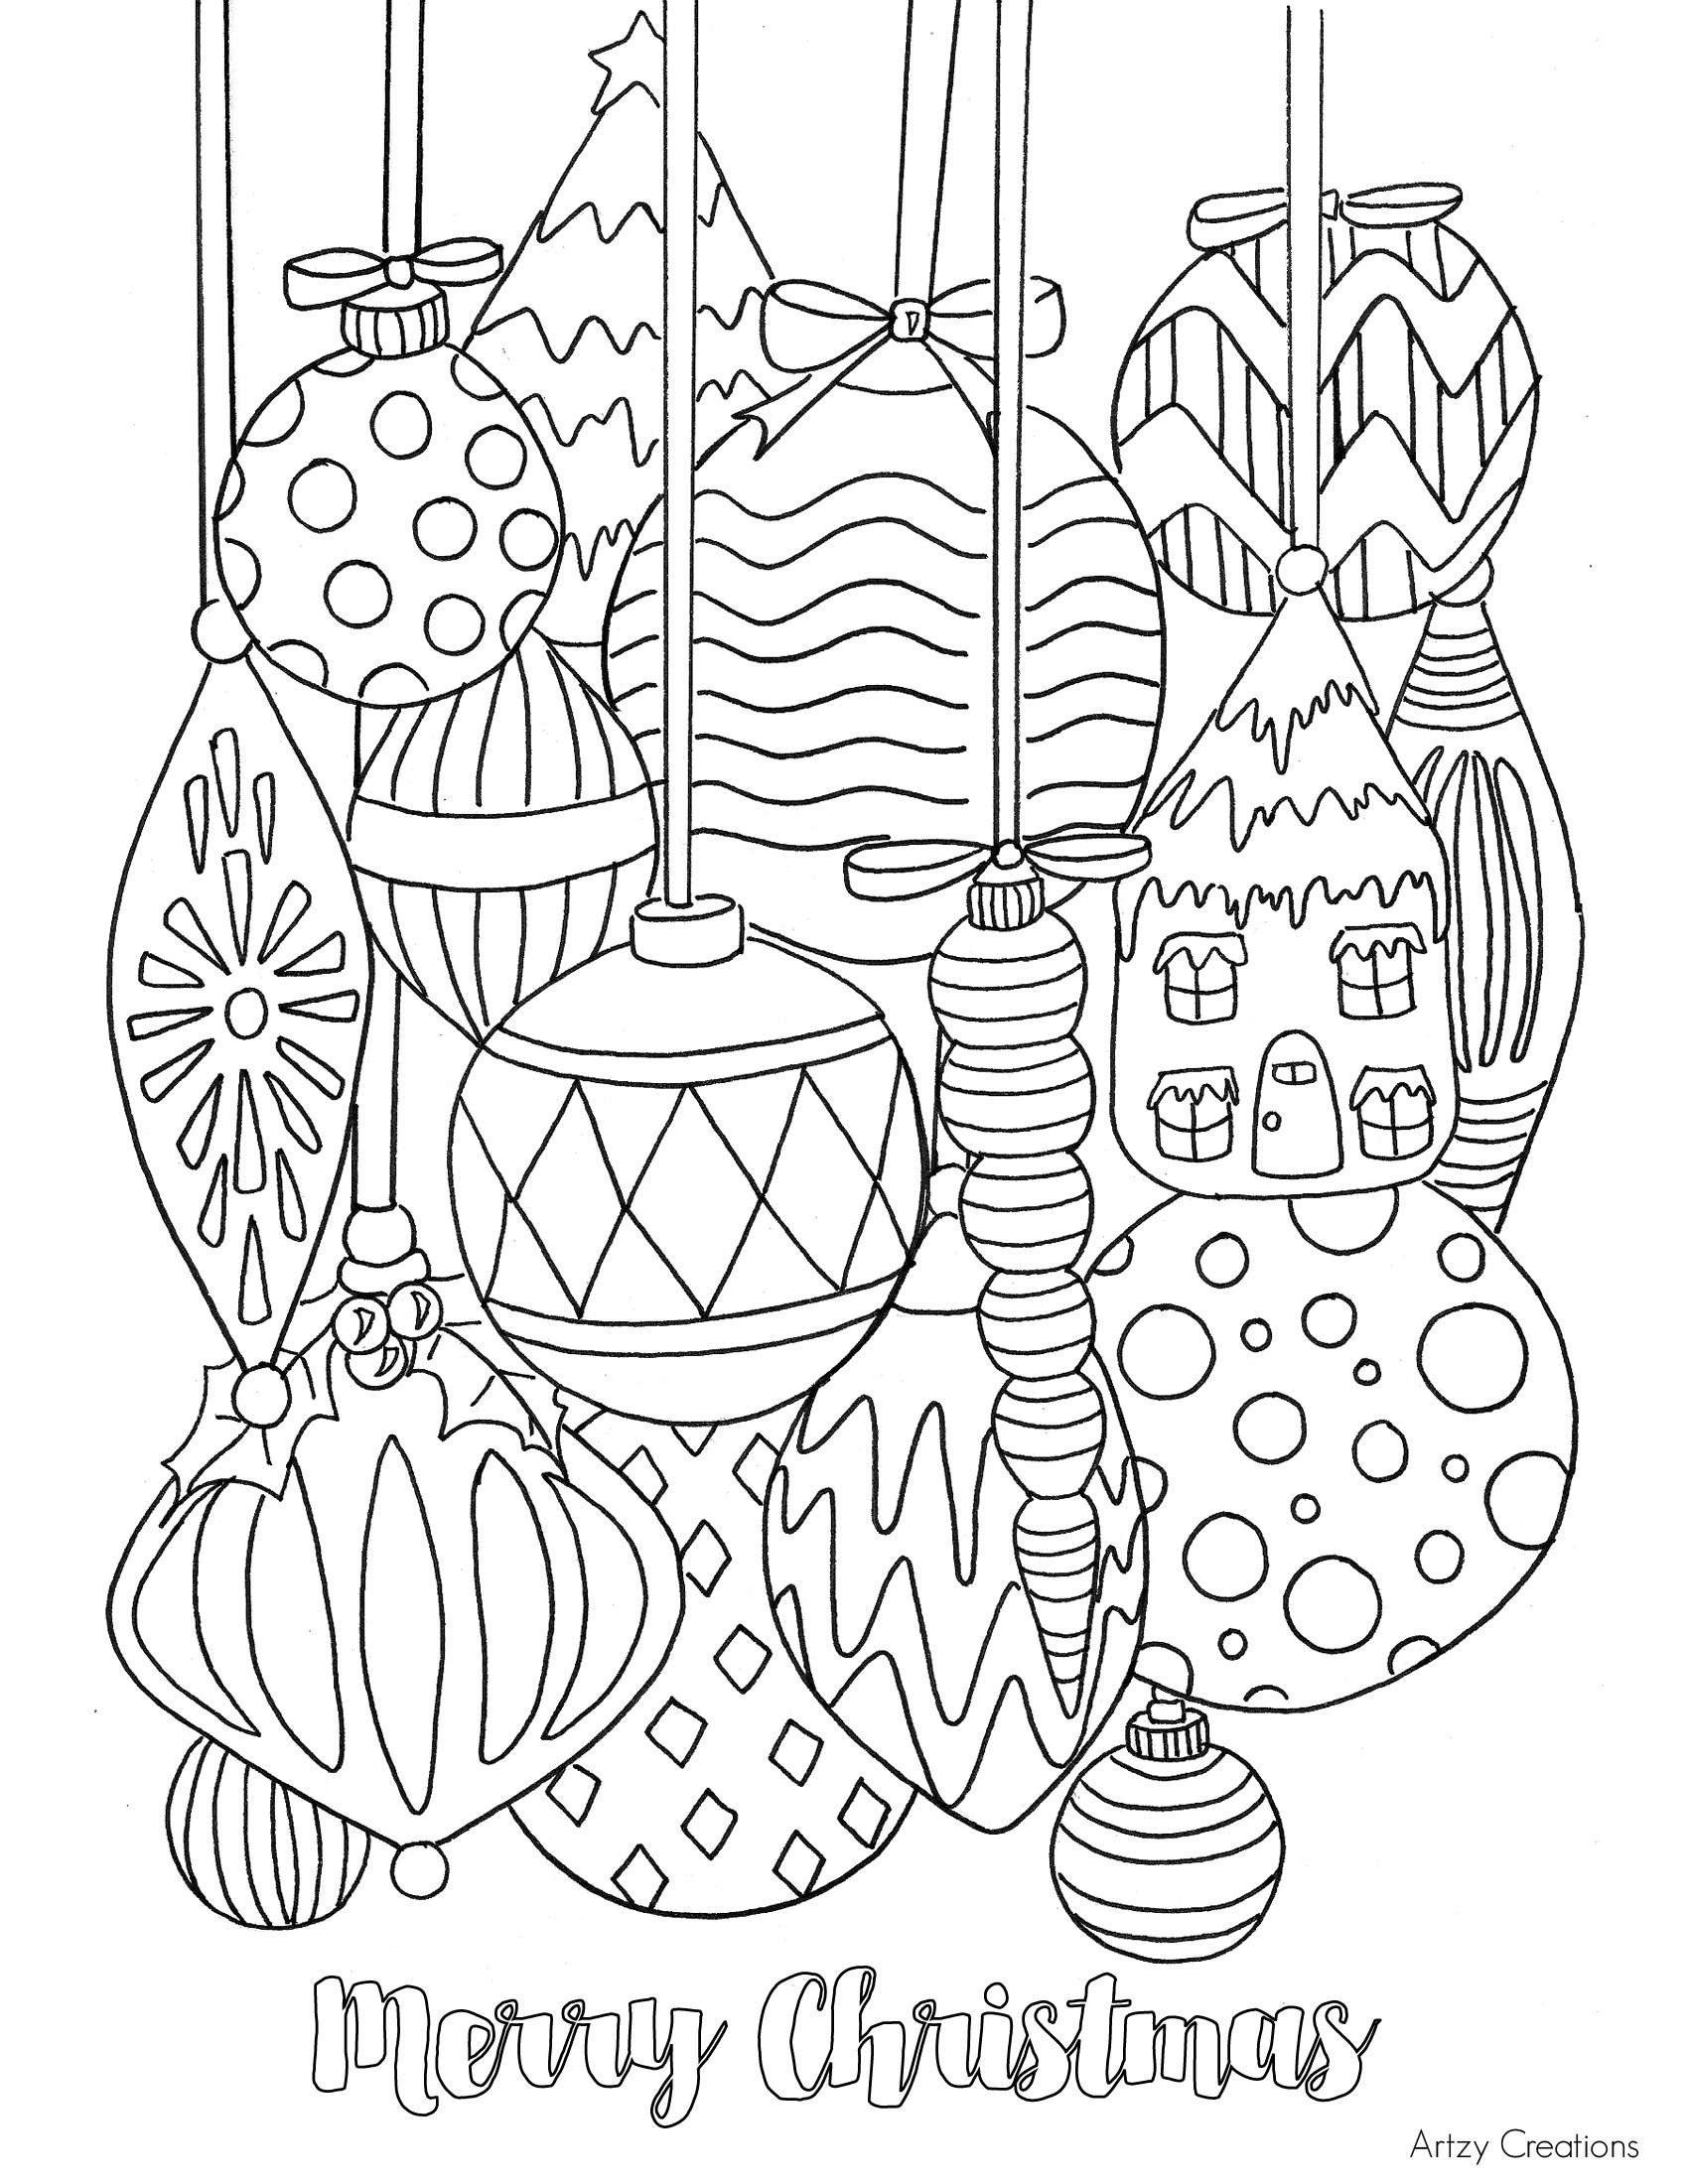 Italian Christmas Coloring Pages With Free Worksheets For Middle School Printable